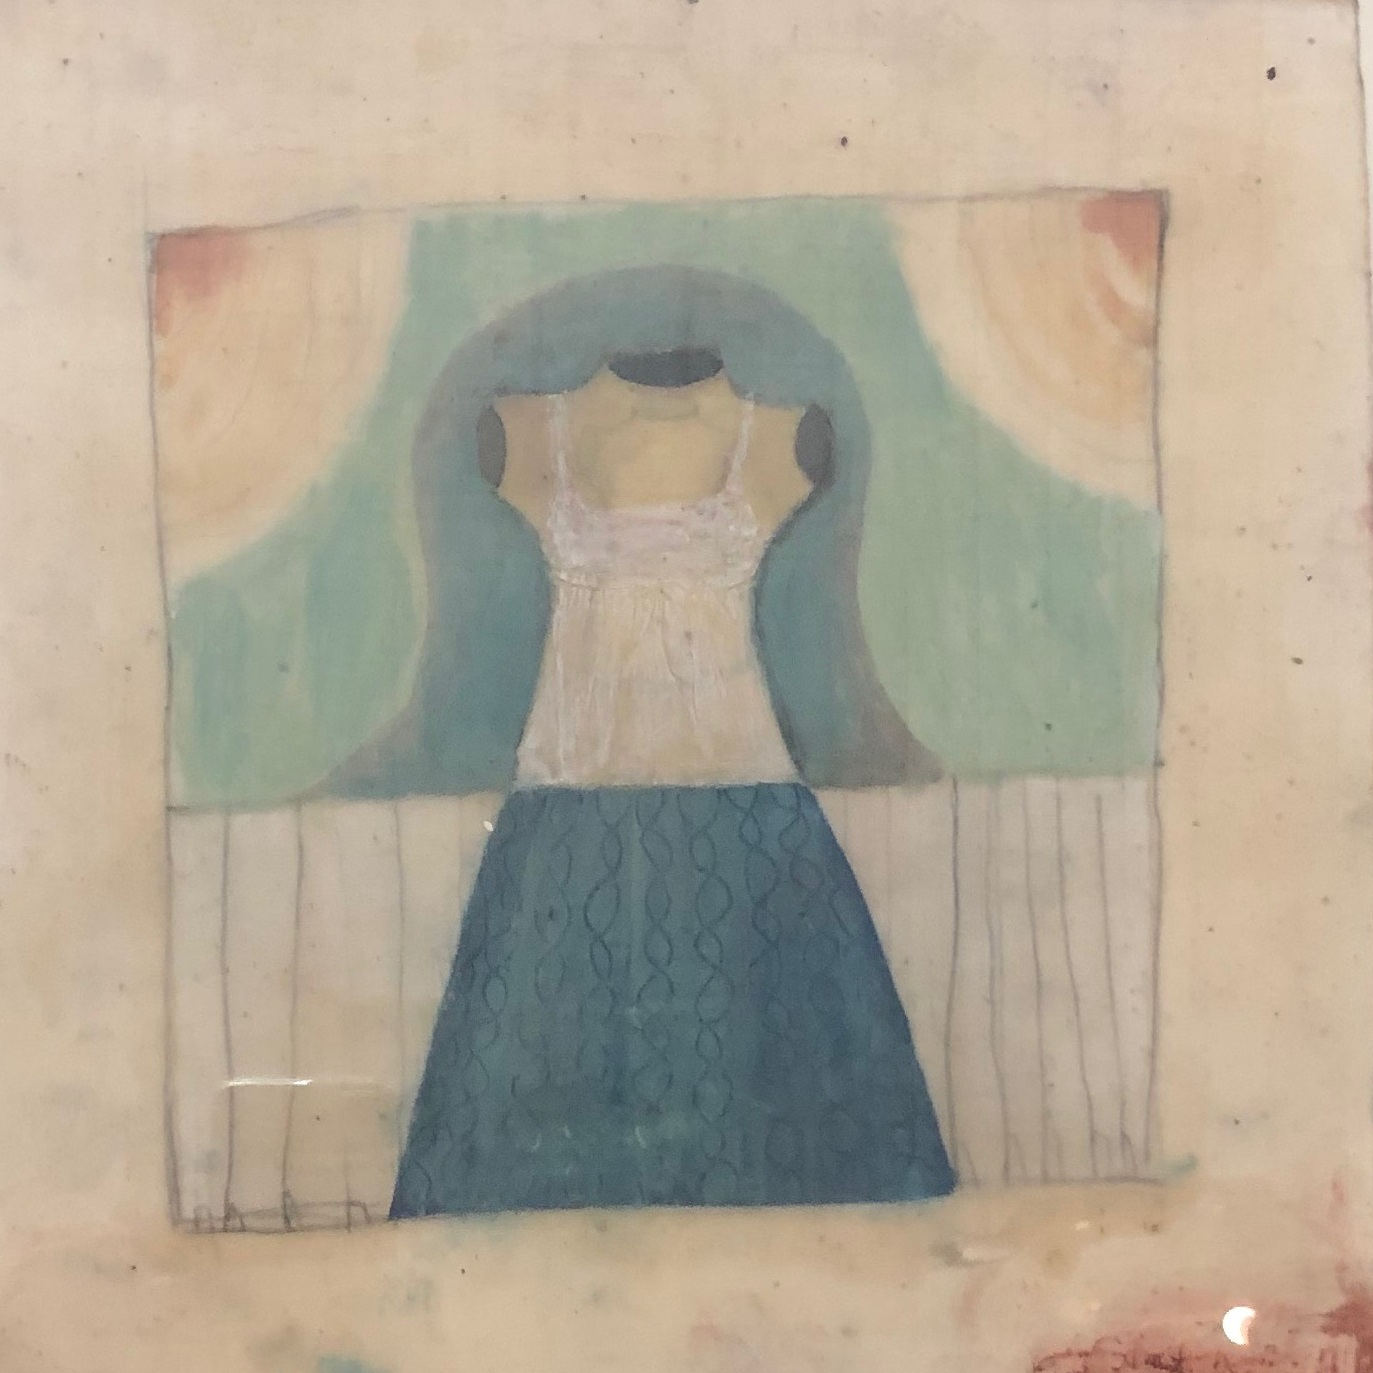 Jeni StallingsHa-Ha Dress, 2019, oil and beeswax on paper, 12.5 x 12.5 in -